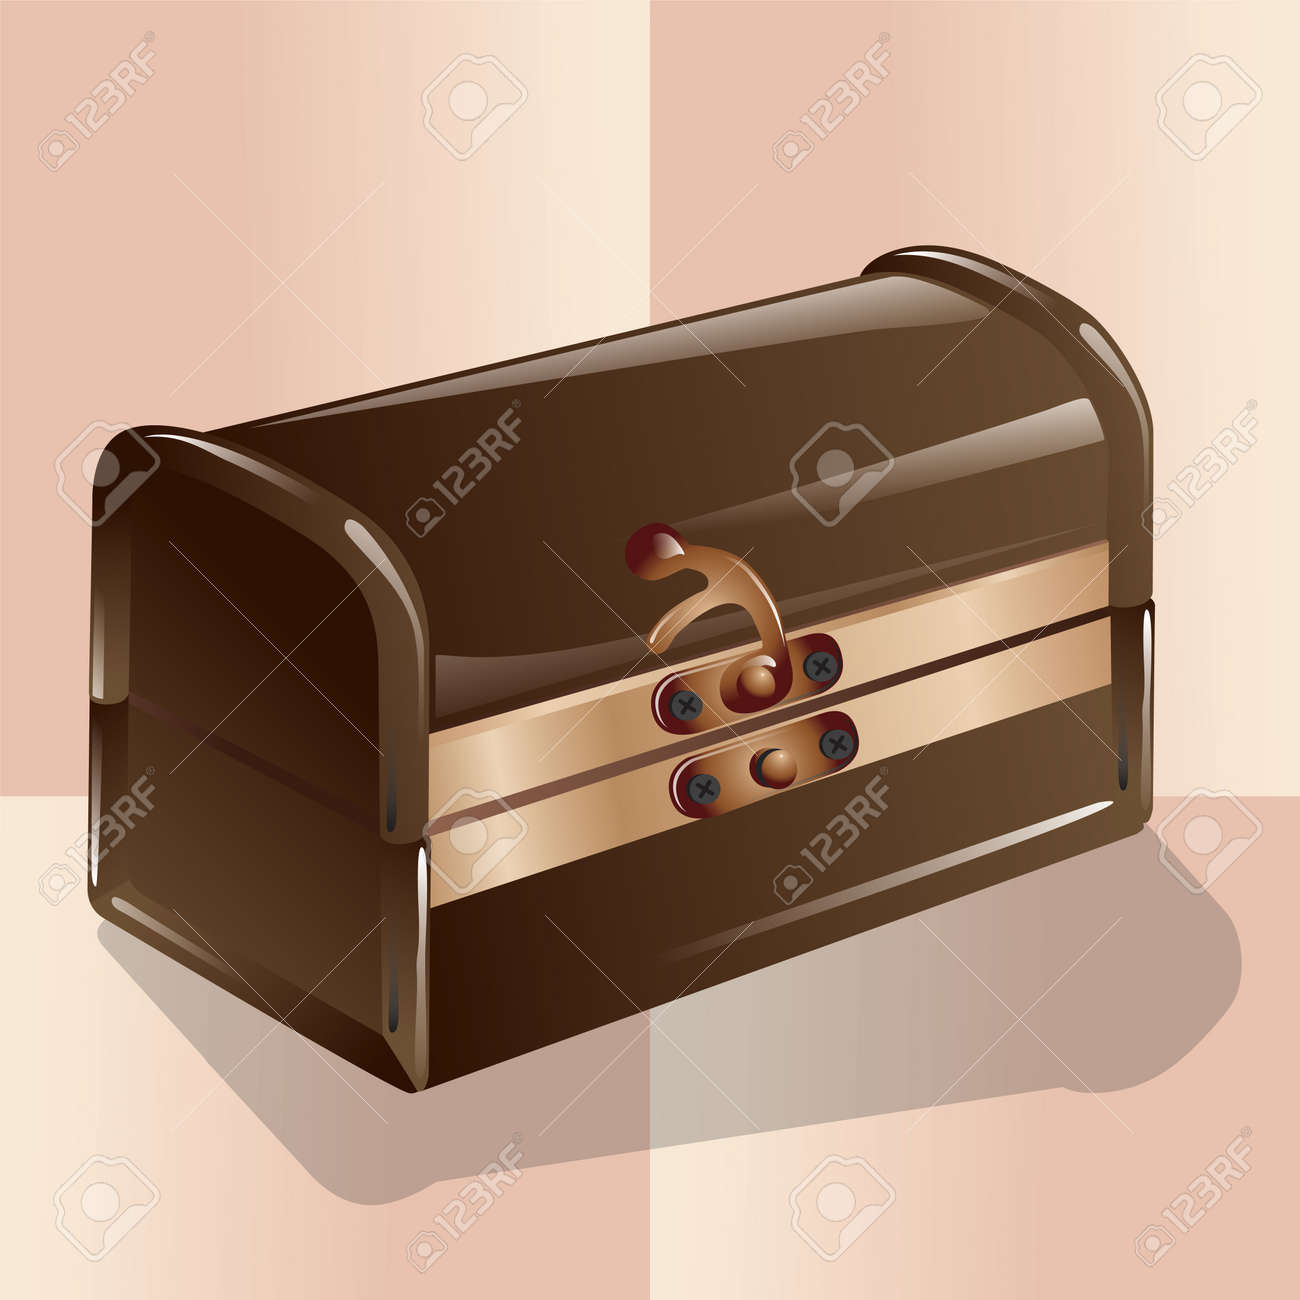 Old type closed chest isolated on pink background. Vector, illustration. Stock Vector - 45222022